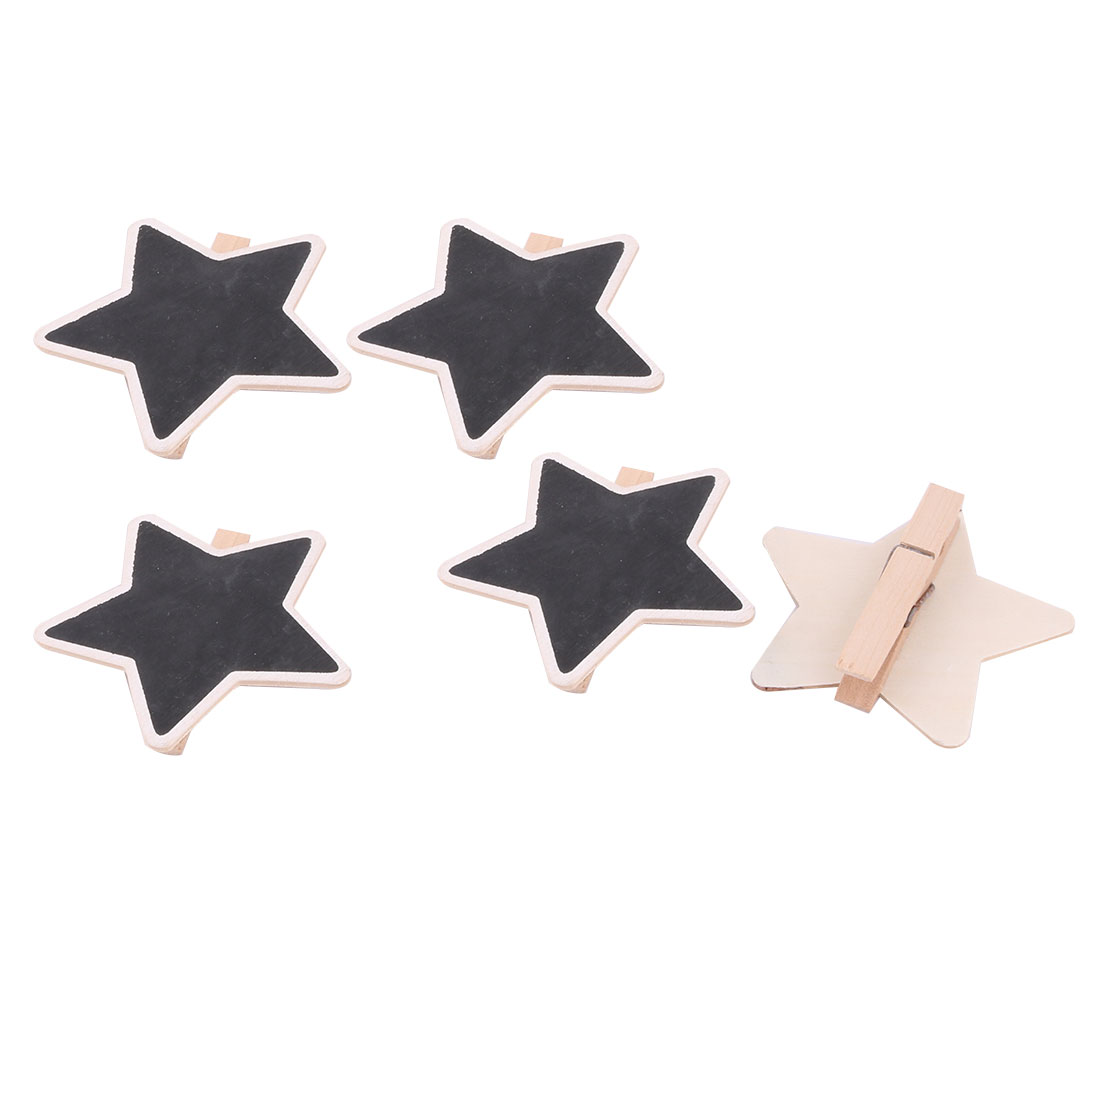 Home Office Wood Star Shaped Table Decor Drawing Message Memo Blackboard 5pcs